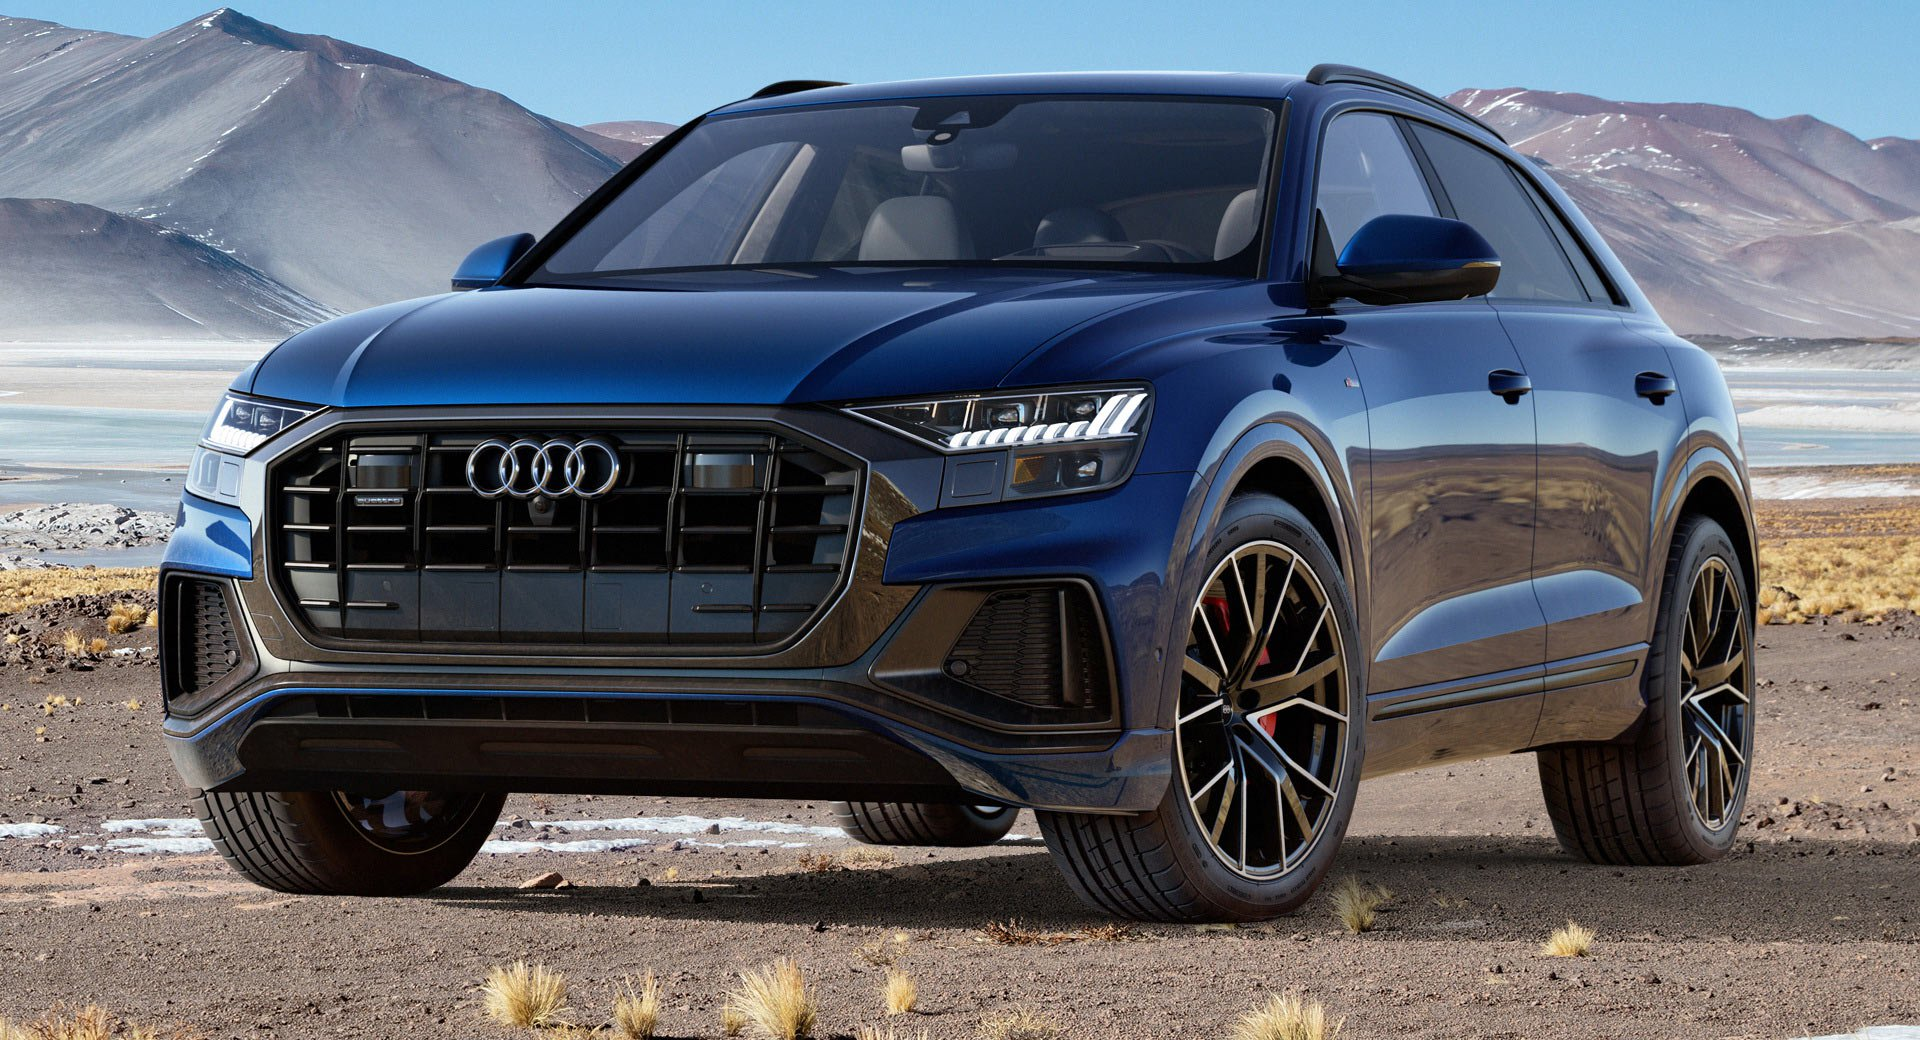 Luxurious and Capable 2019 Audi Q8 SUV For Sale in Bay ...